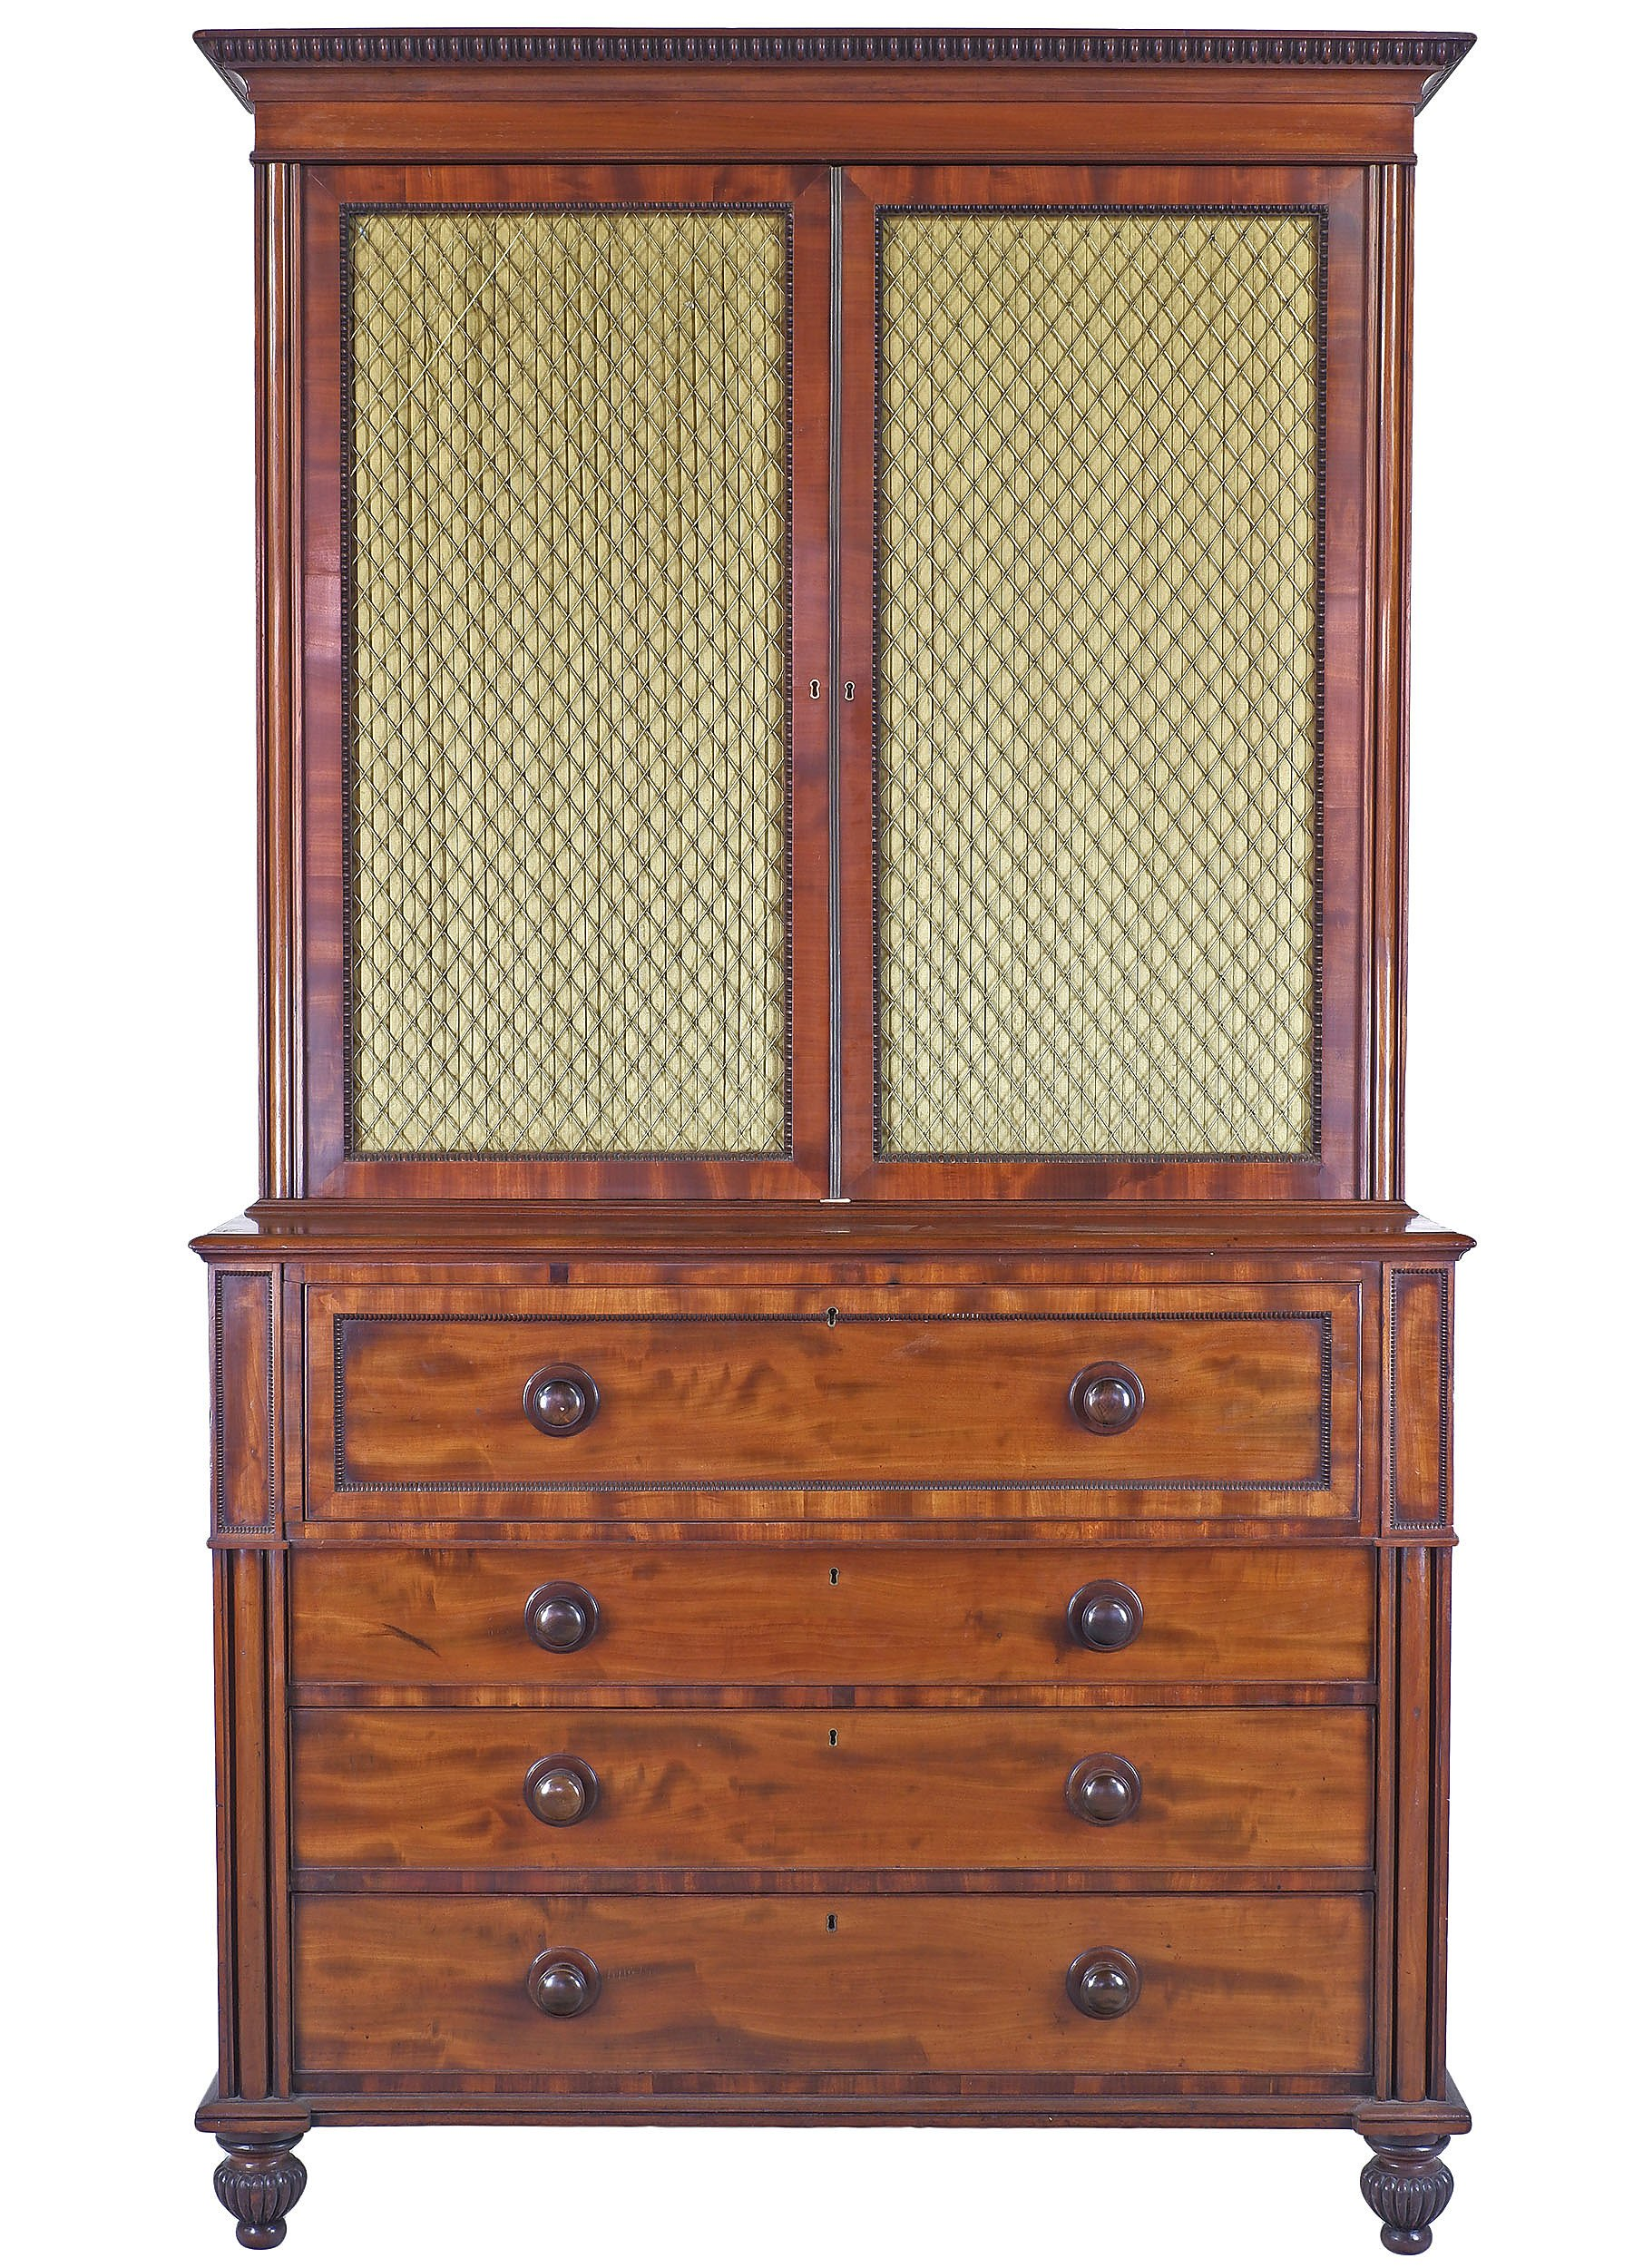 'Superior Quality George IV Mahogany Secretaire Bookcase with Pleated Curtains and Brass Grill Circa 1830'